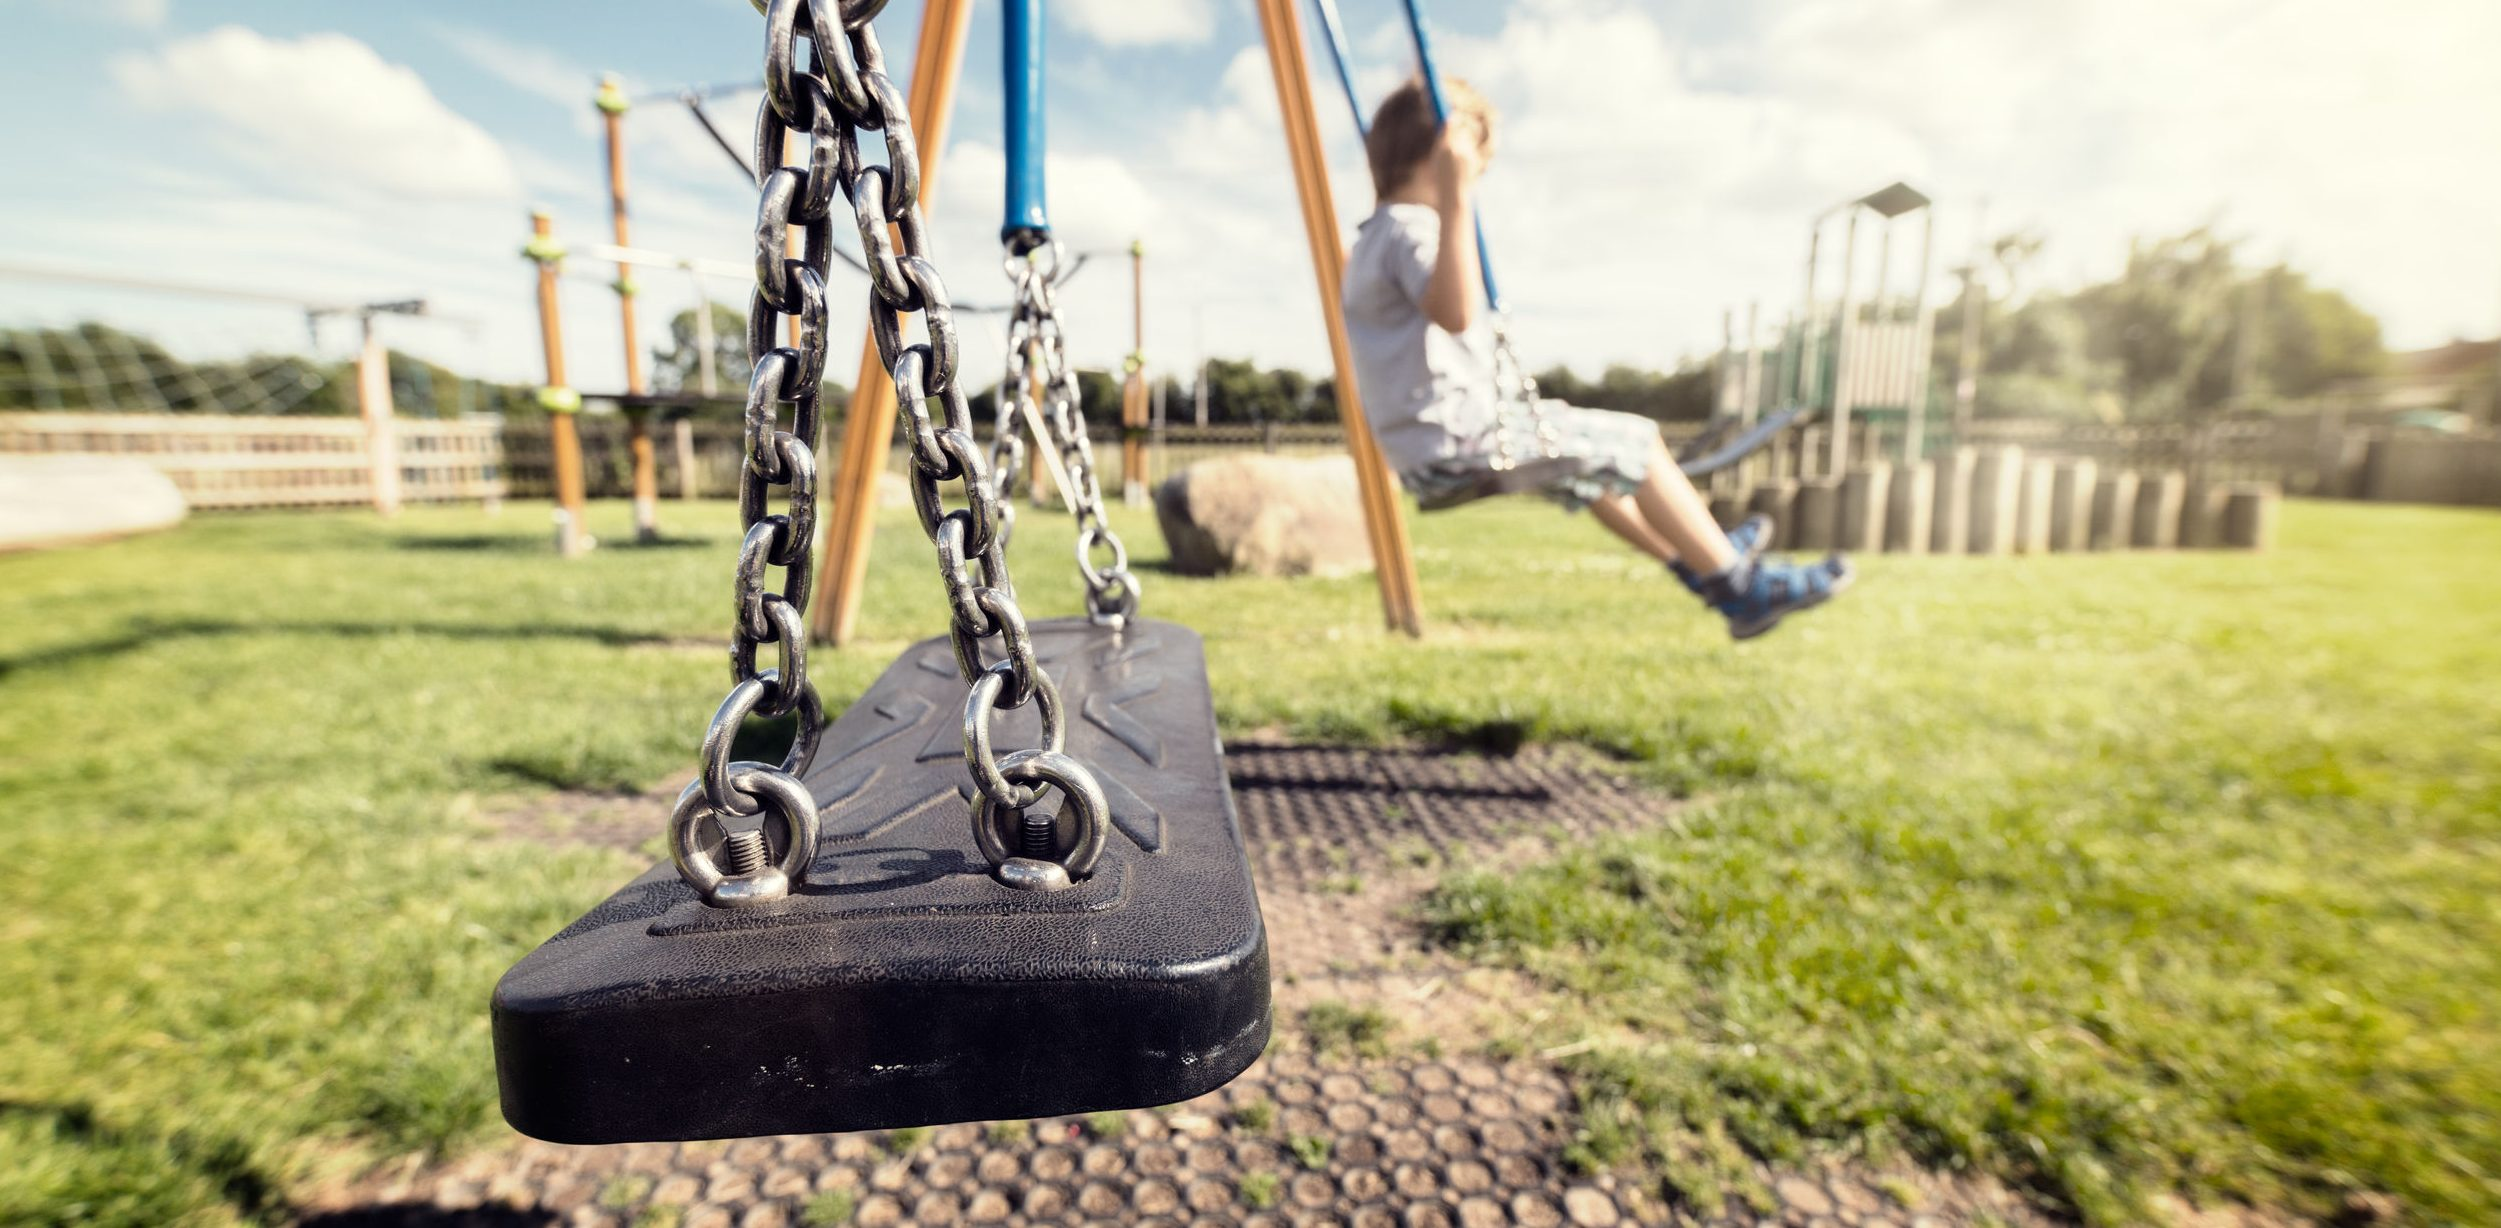 If You Make it Free, Will They Come? Using a Physical Activity Accessibility Model to Understand the Use of a Free Children's Recreation Pass